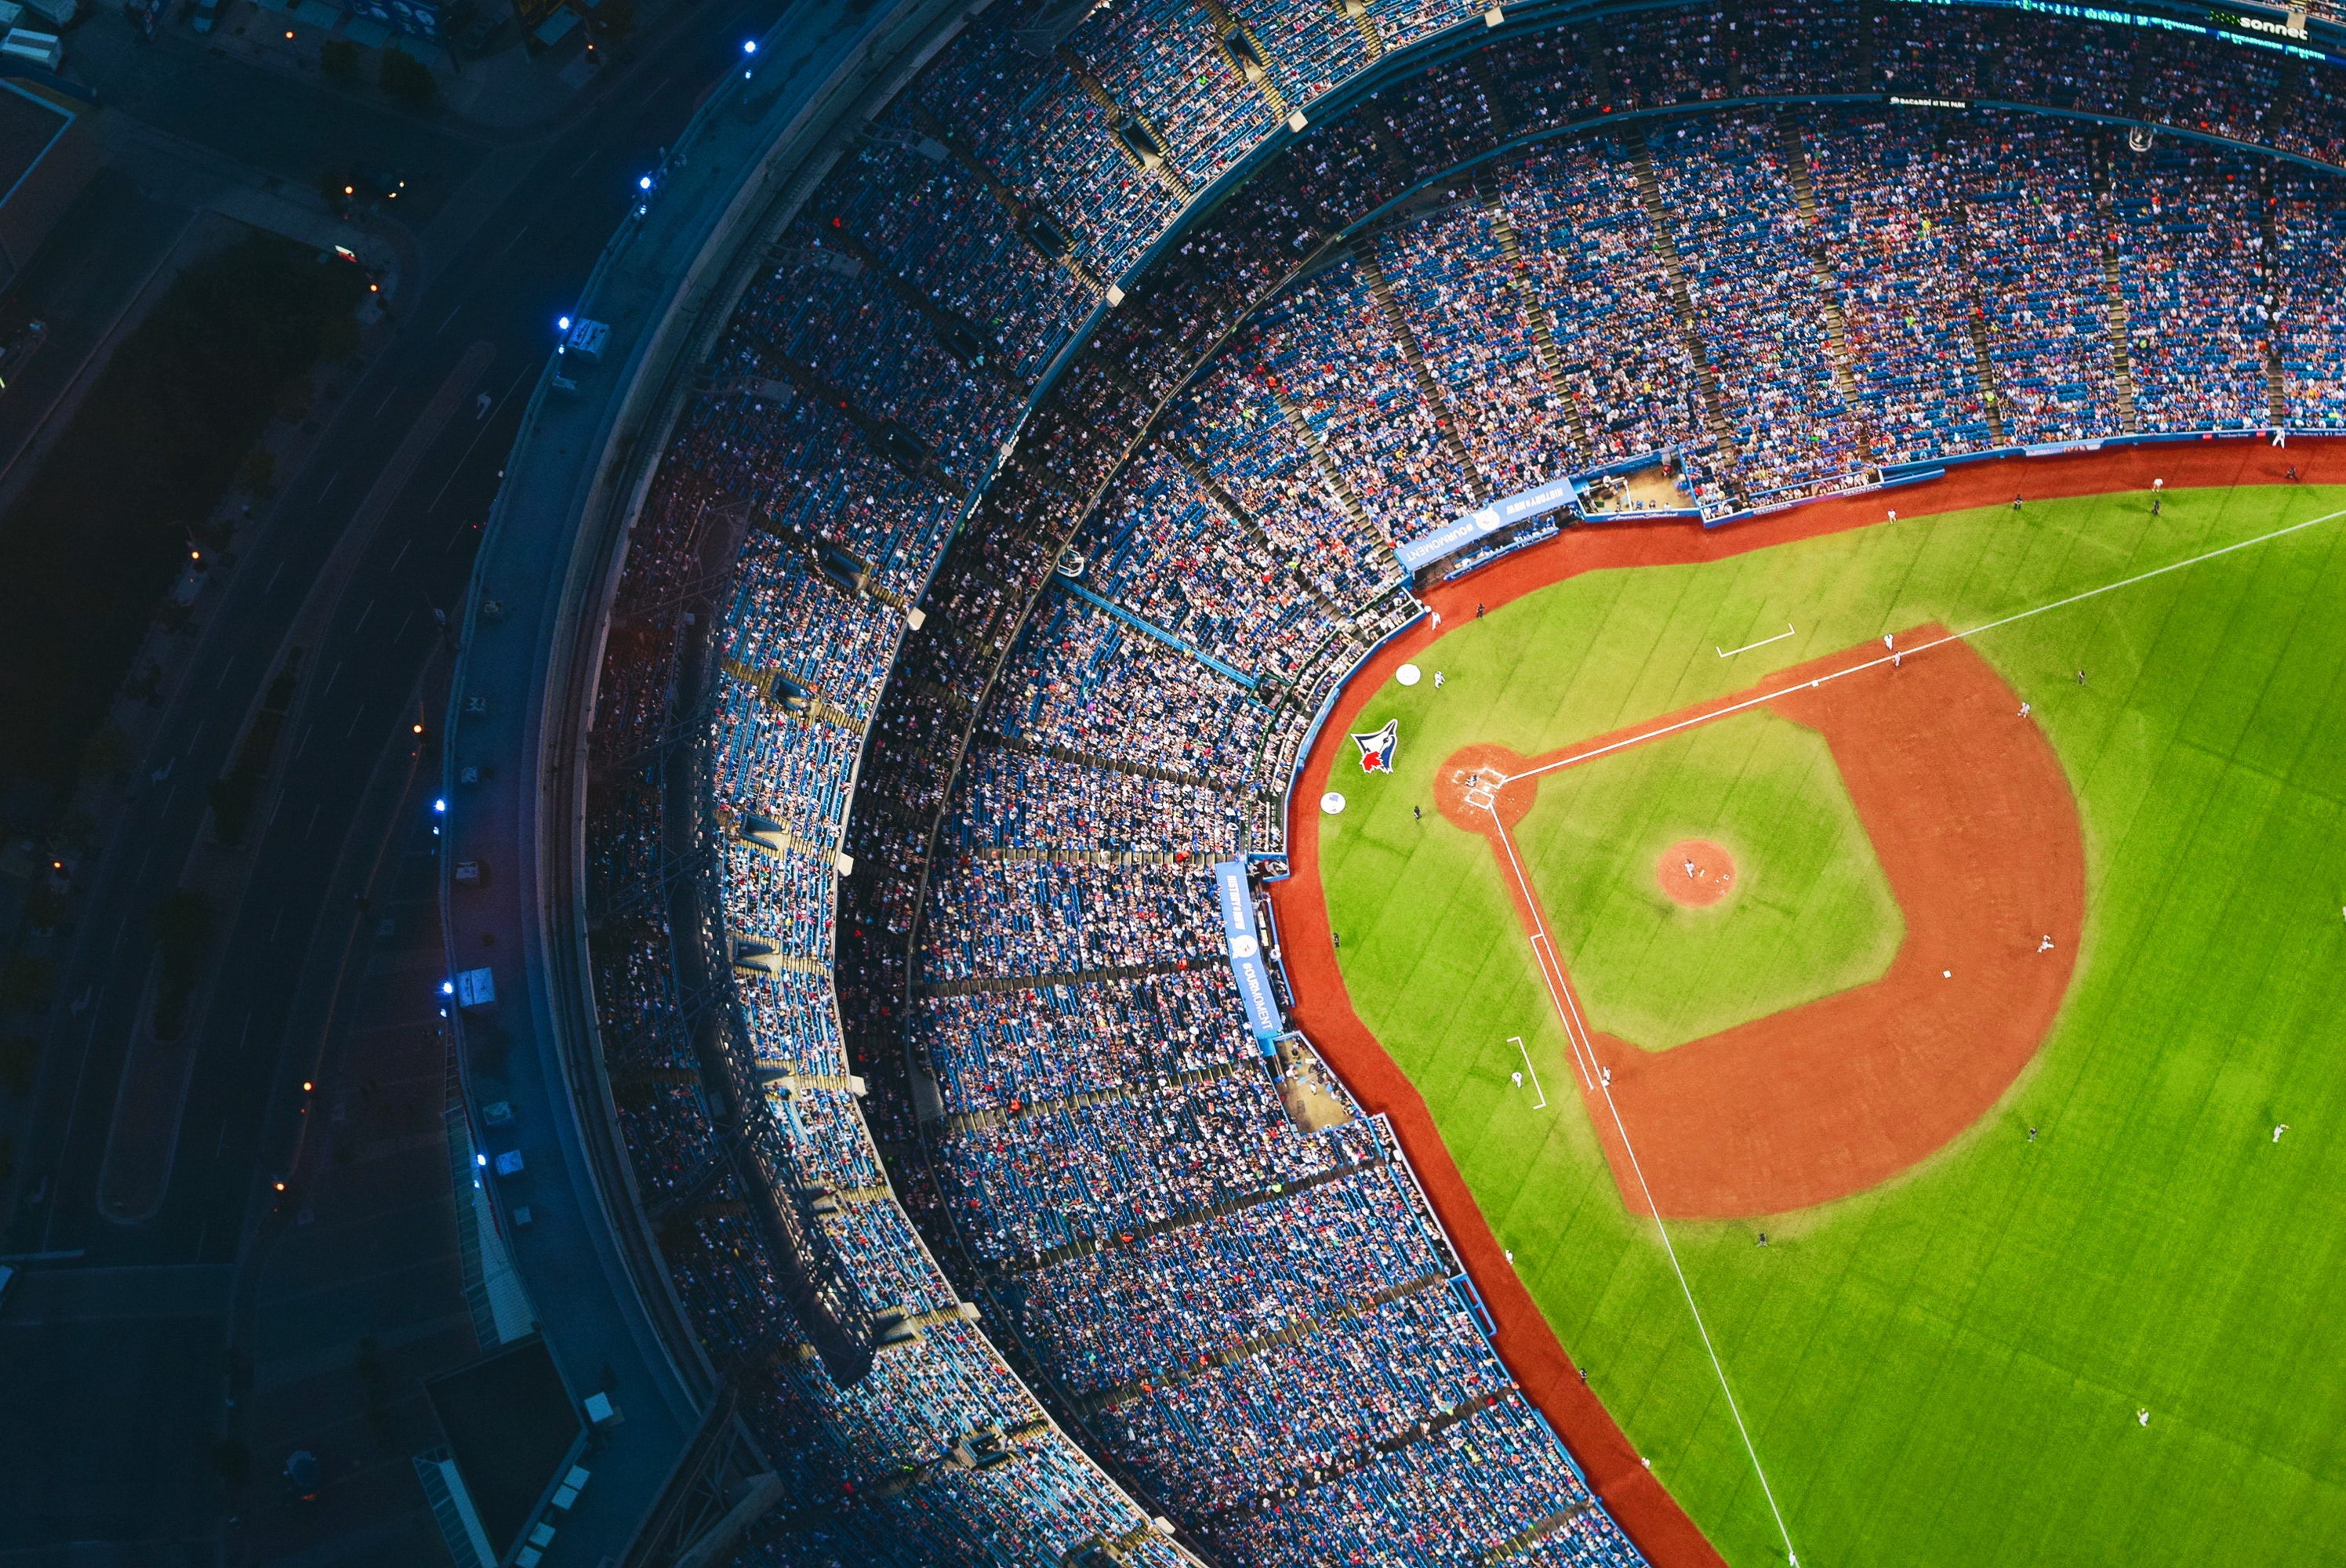 Aerial View of Sports Stadium during Daytime, Pattern, People, Outdoors, Lights, HQ Photo